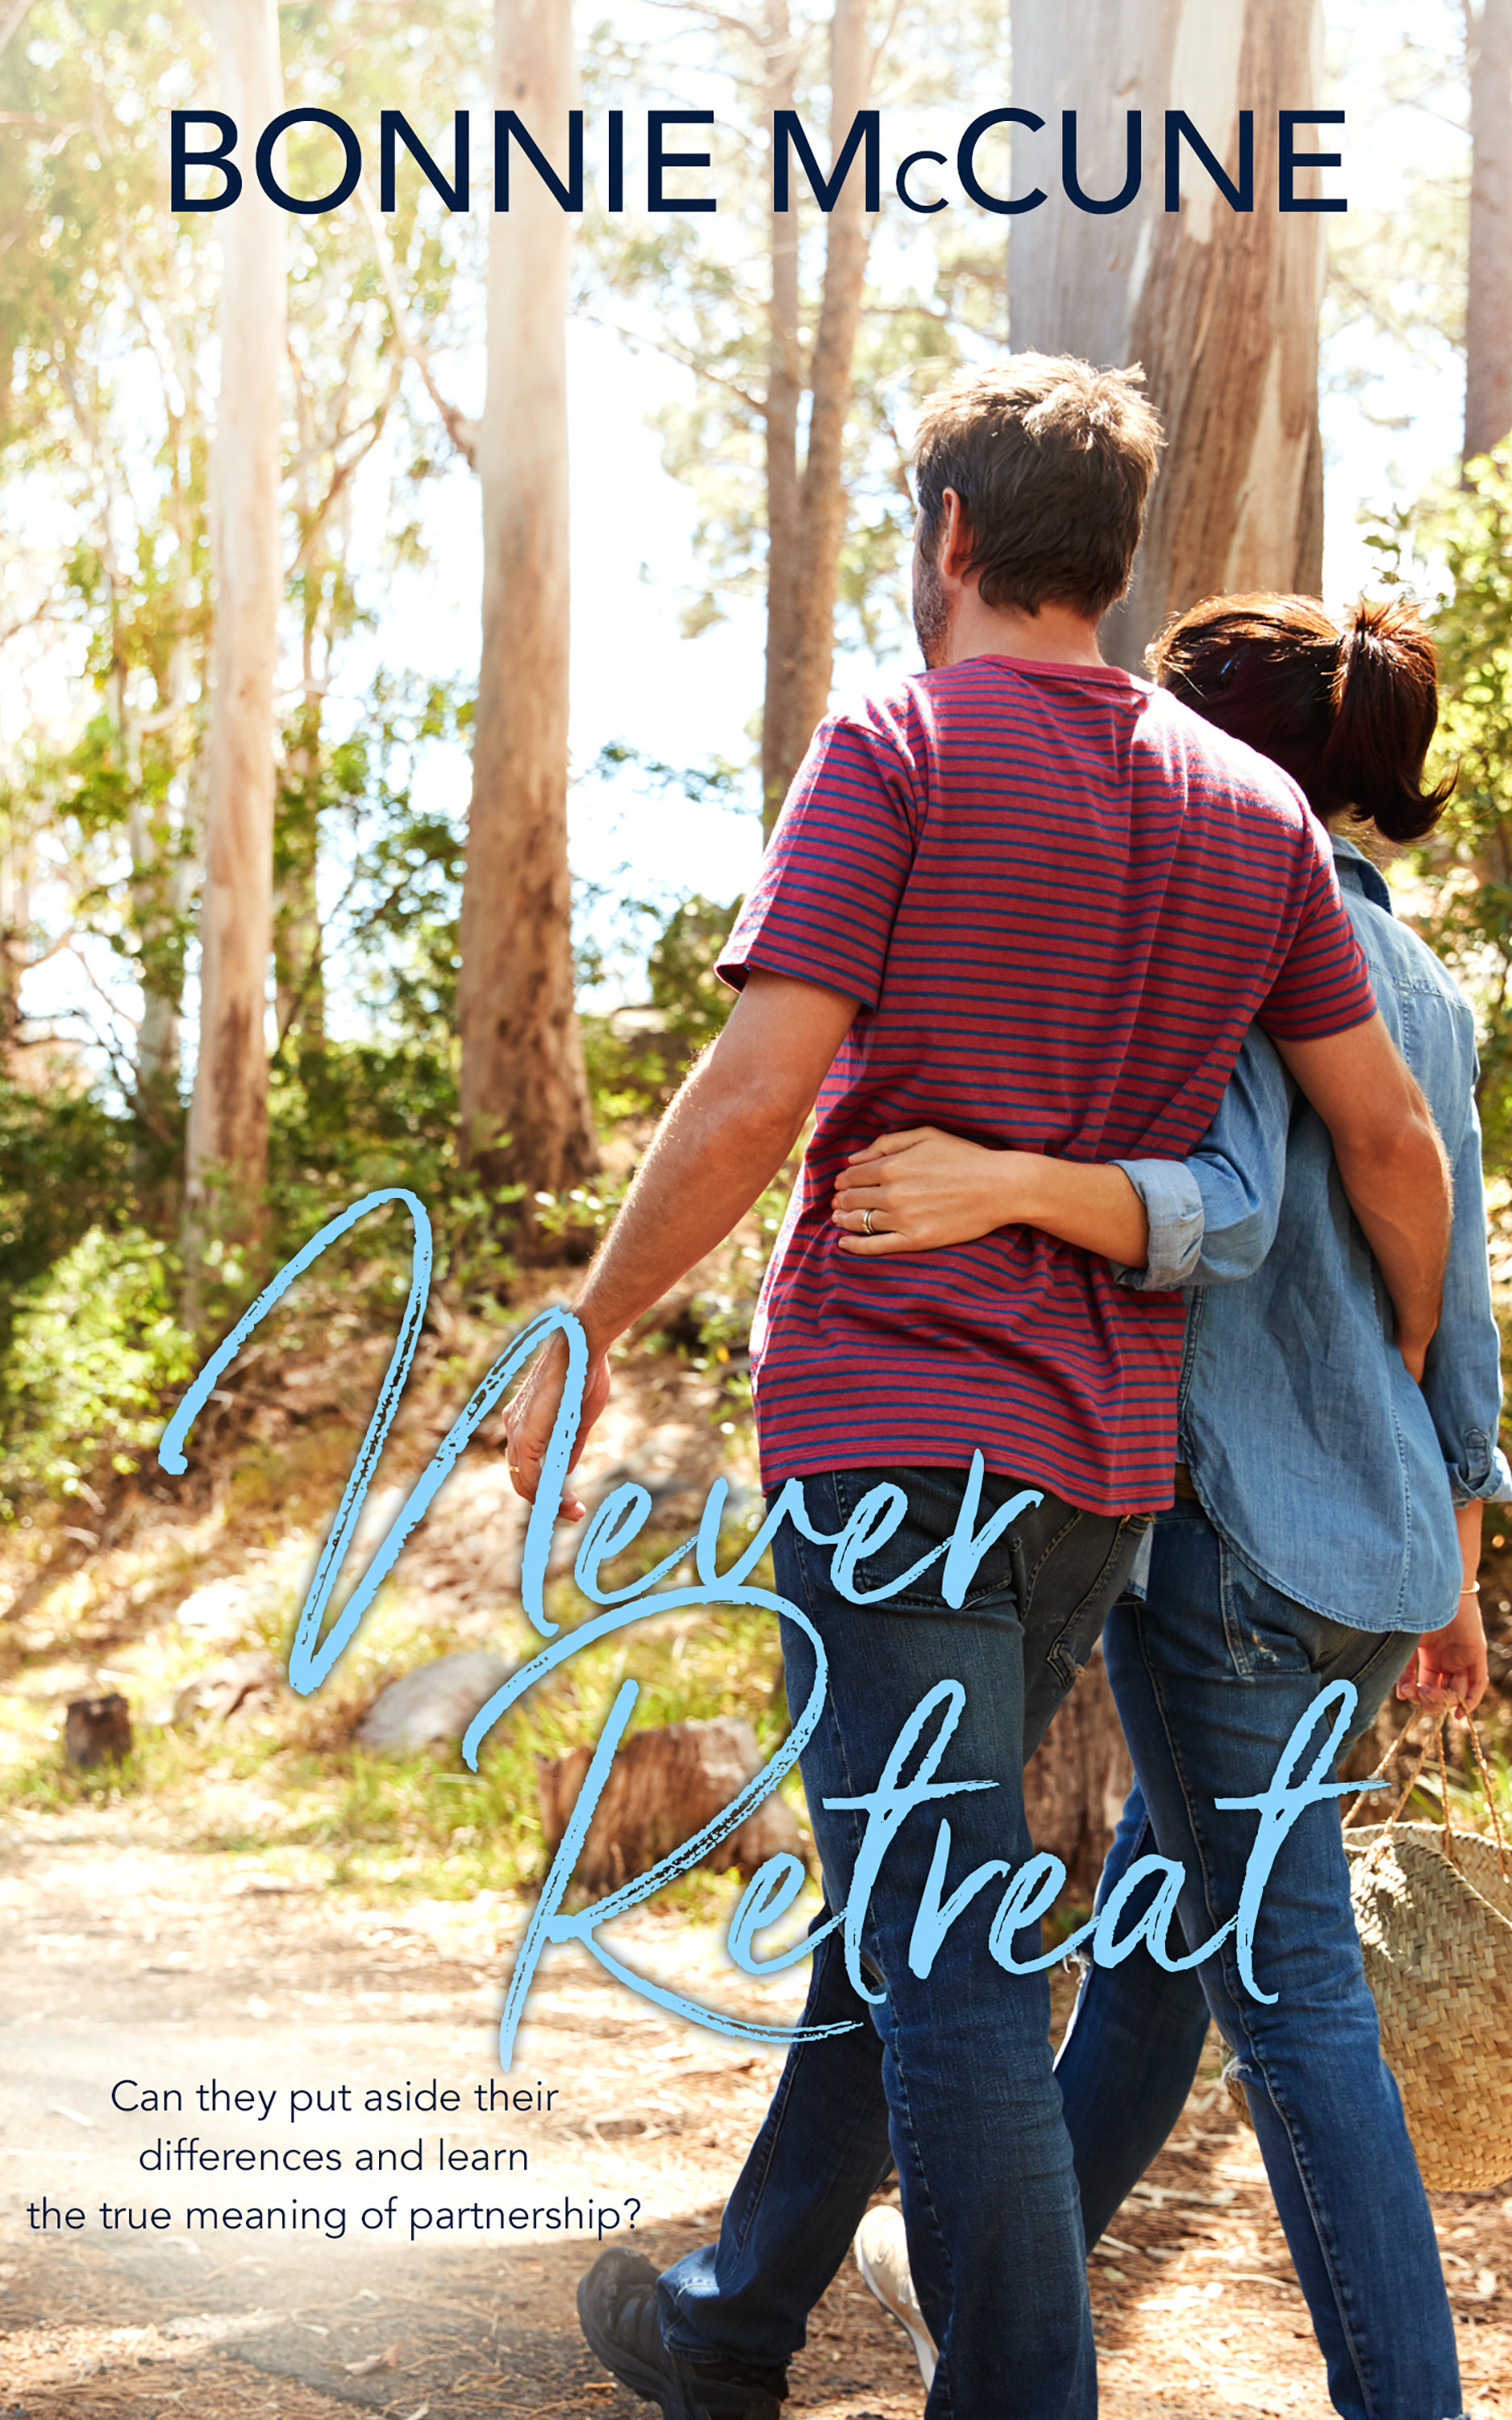 Never Retreat by Bonnie McCune book cover